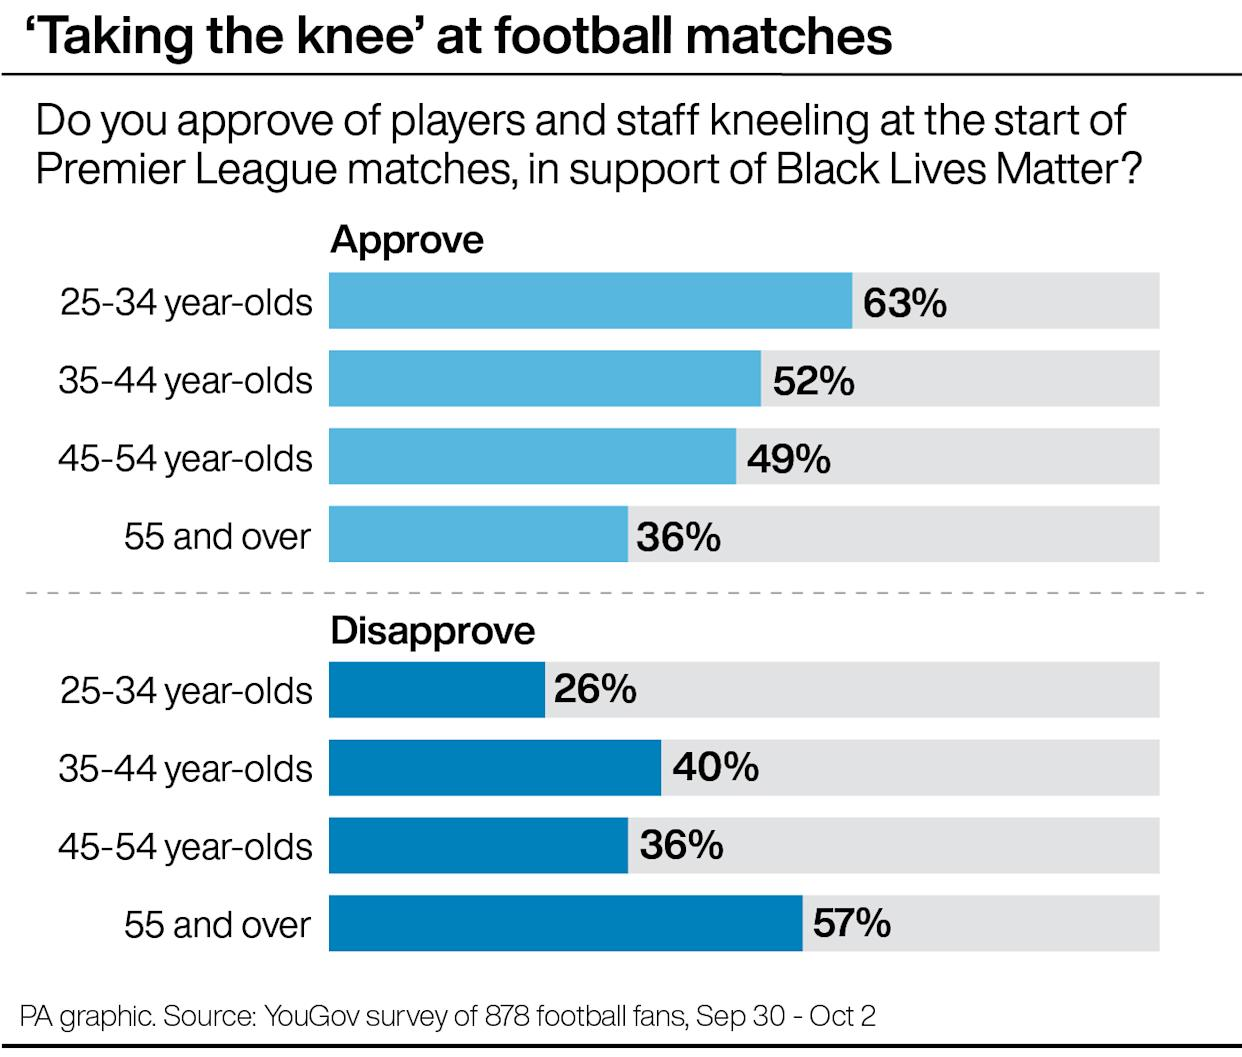 Approval levels by age group for players 'taking the knee'